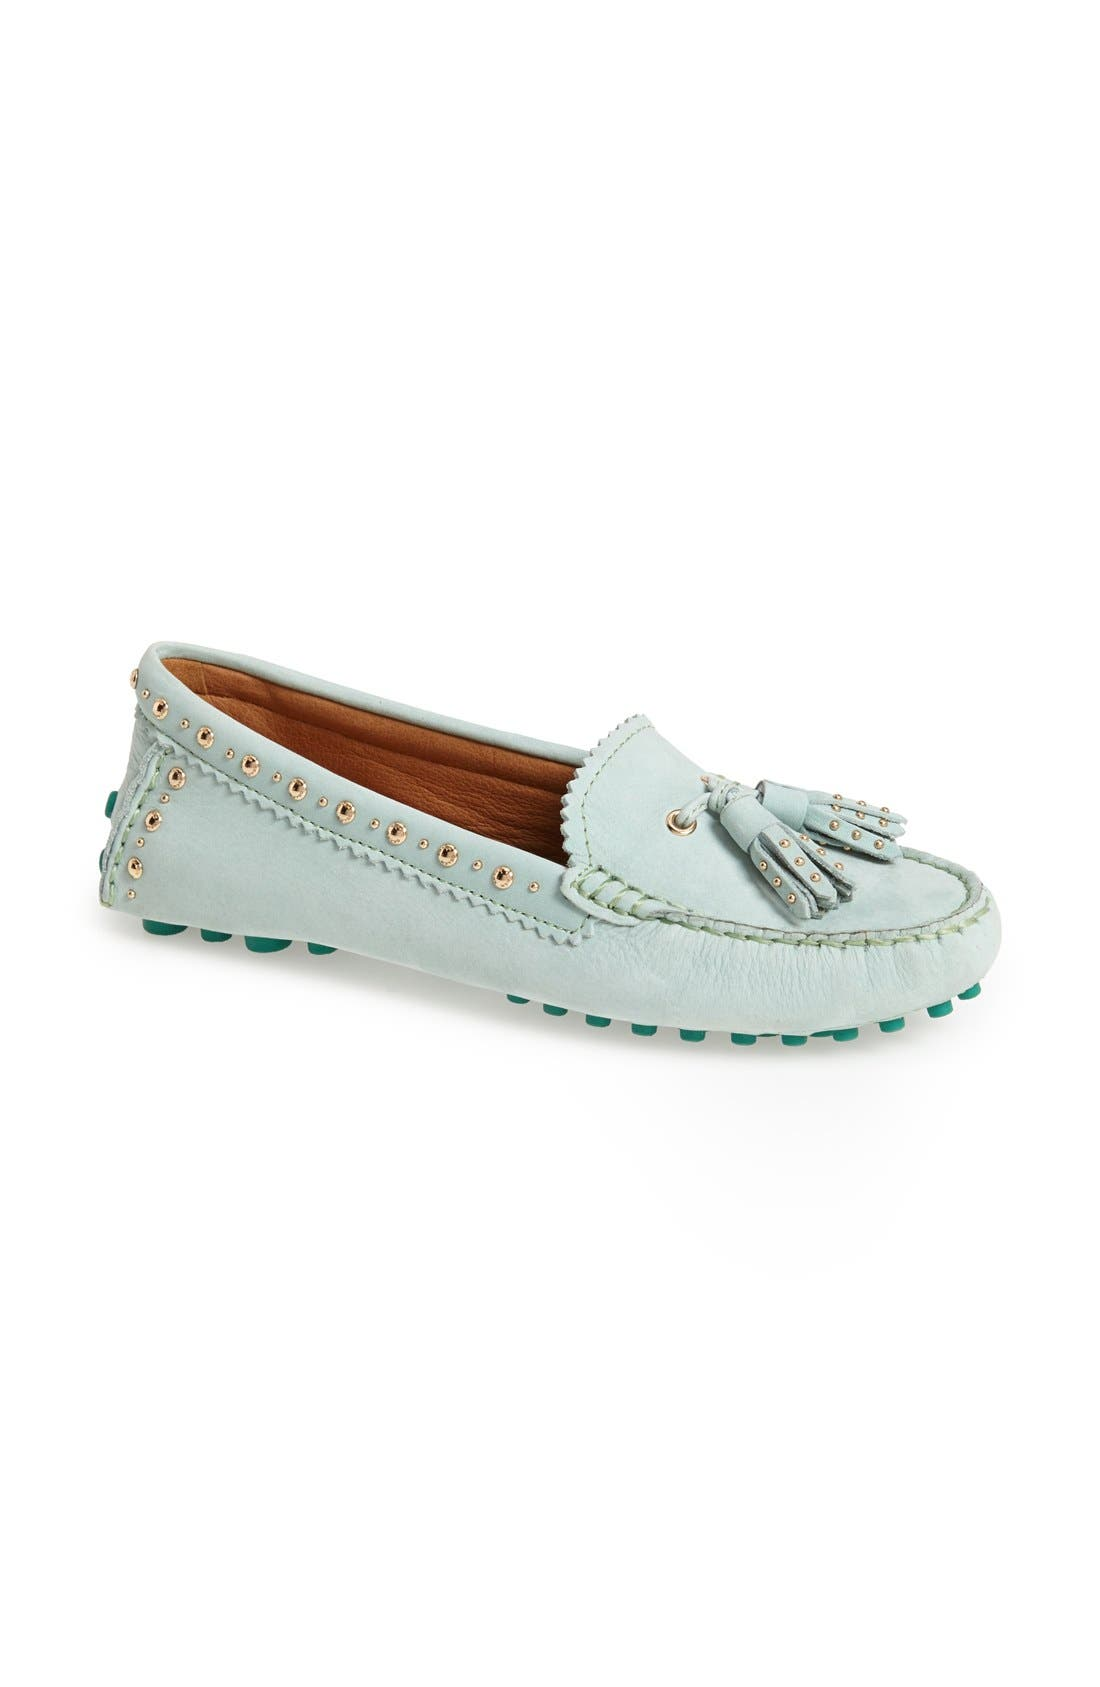 Alternate Image 1 Selected - COACH 'Norfolk' Leather Driving Loafer (Women)